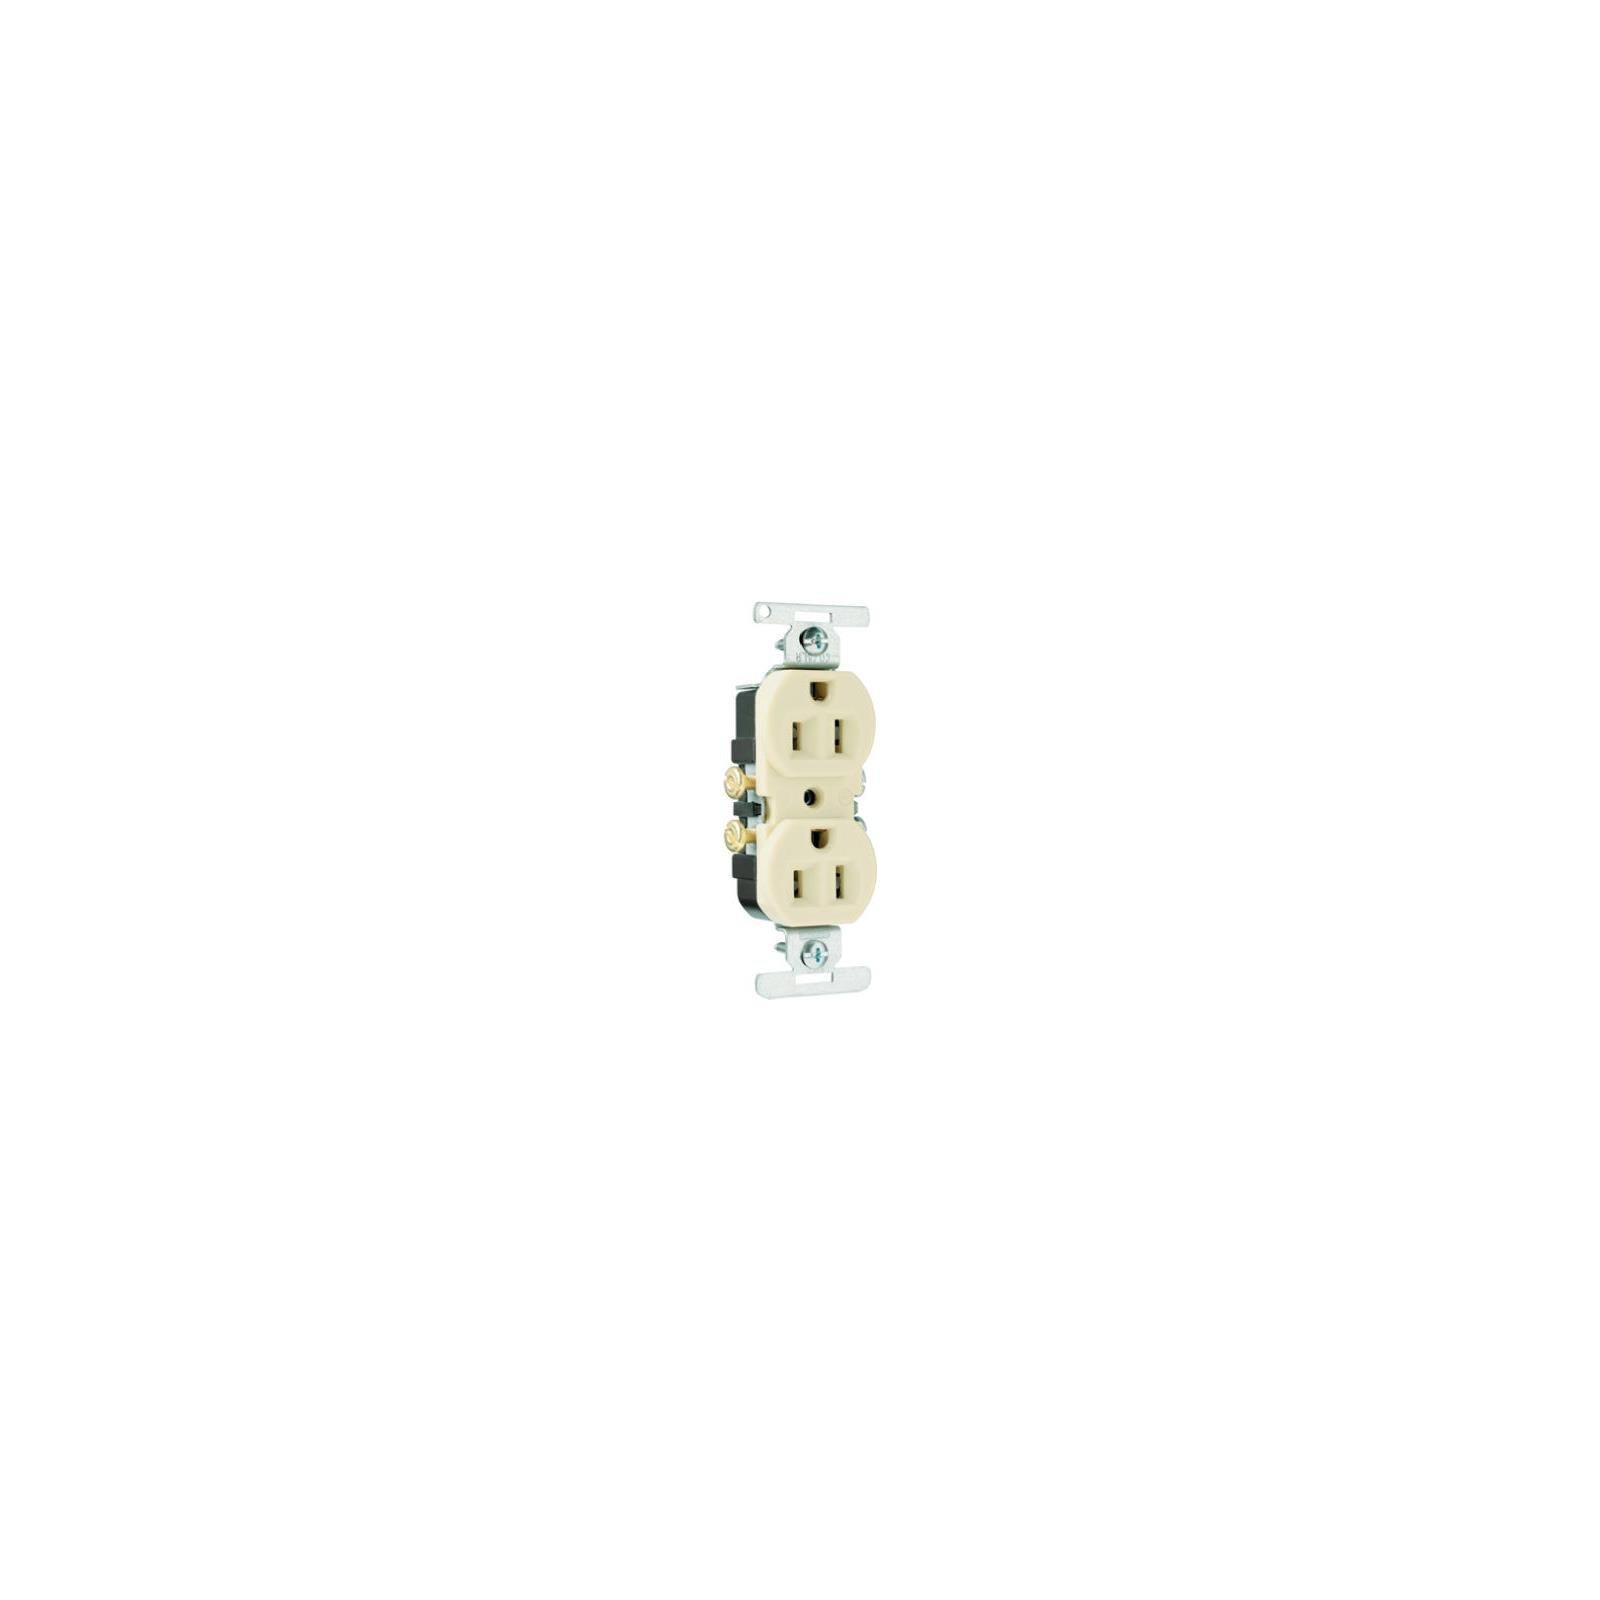 Pass & Seymour 3232ICACC20 Duplex Outlet, Copper/Aluminum, 2-Pole, 3-Wire Ground, Ivory, 15-Amp, 125-Volt - Quantity 20